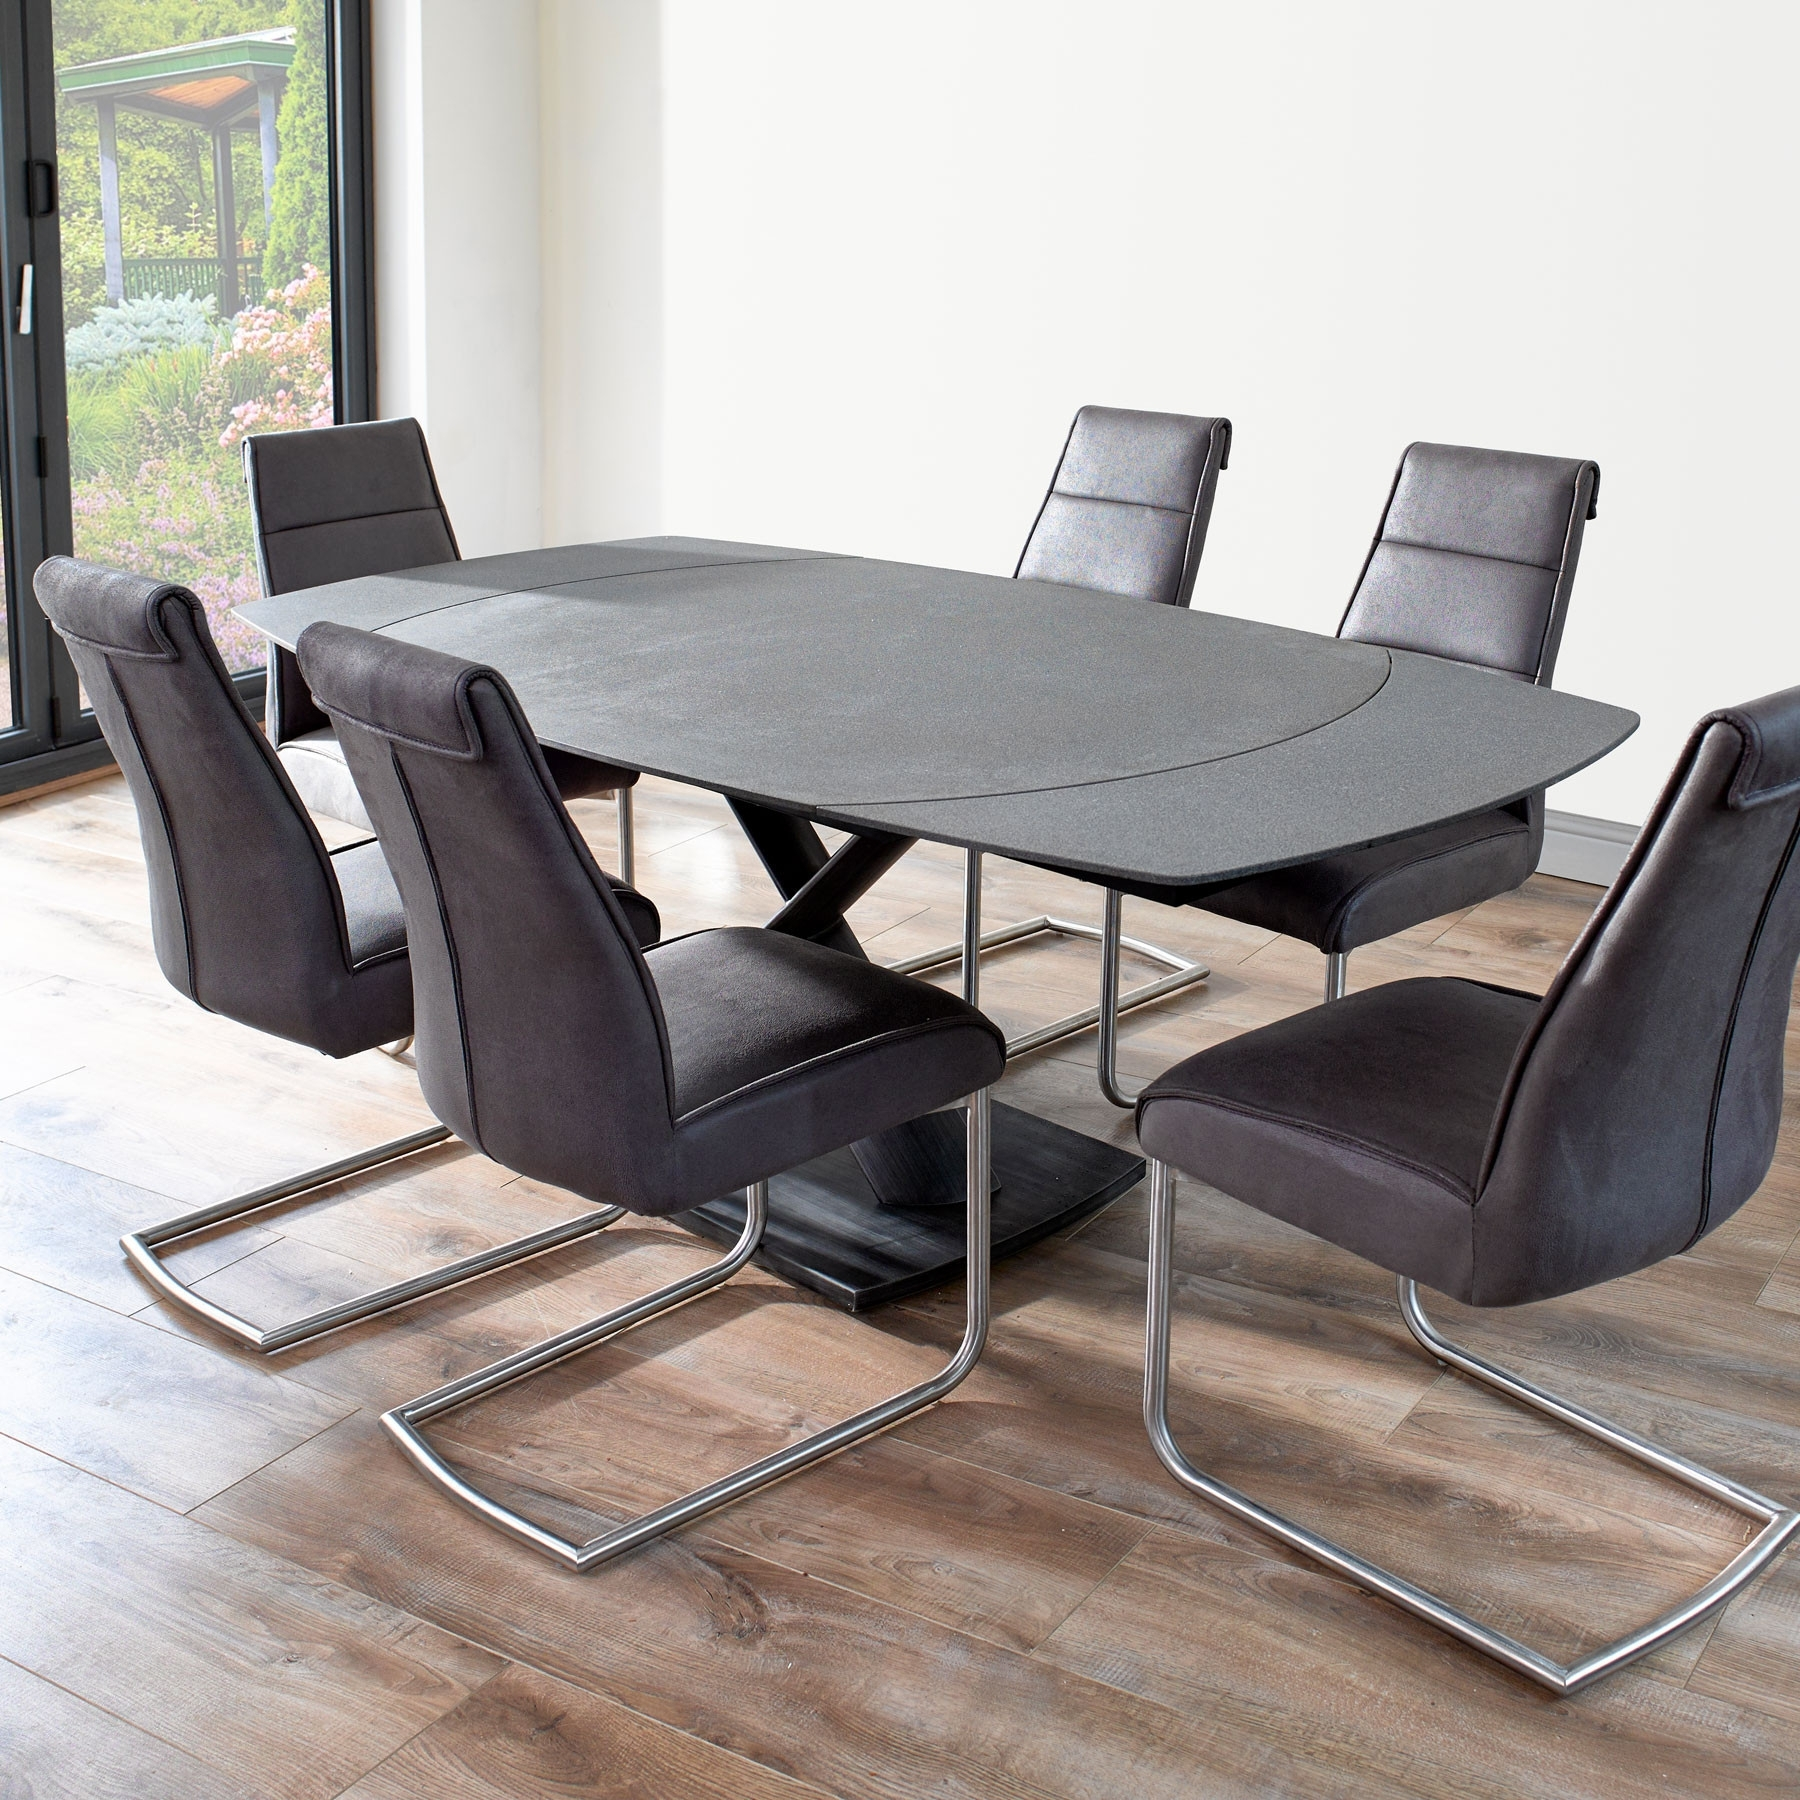 Extending Dining Tables And 6 Chairs Intended For Preferred Domasco Revolving Extending Dining Table & 6 Chairs (Gallery 1 of 25)